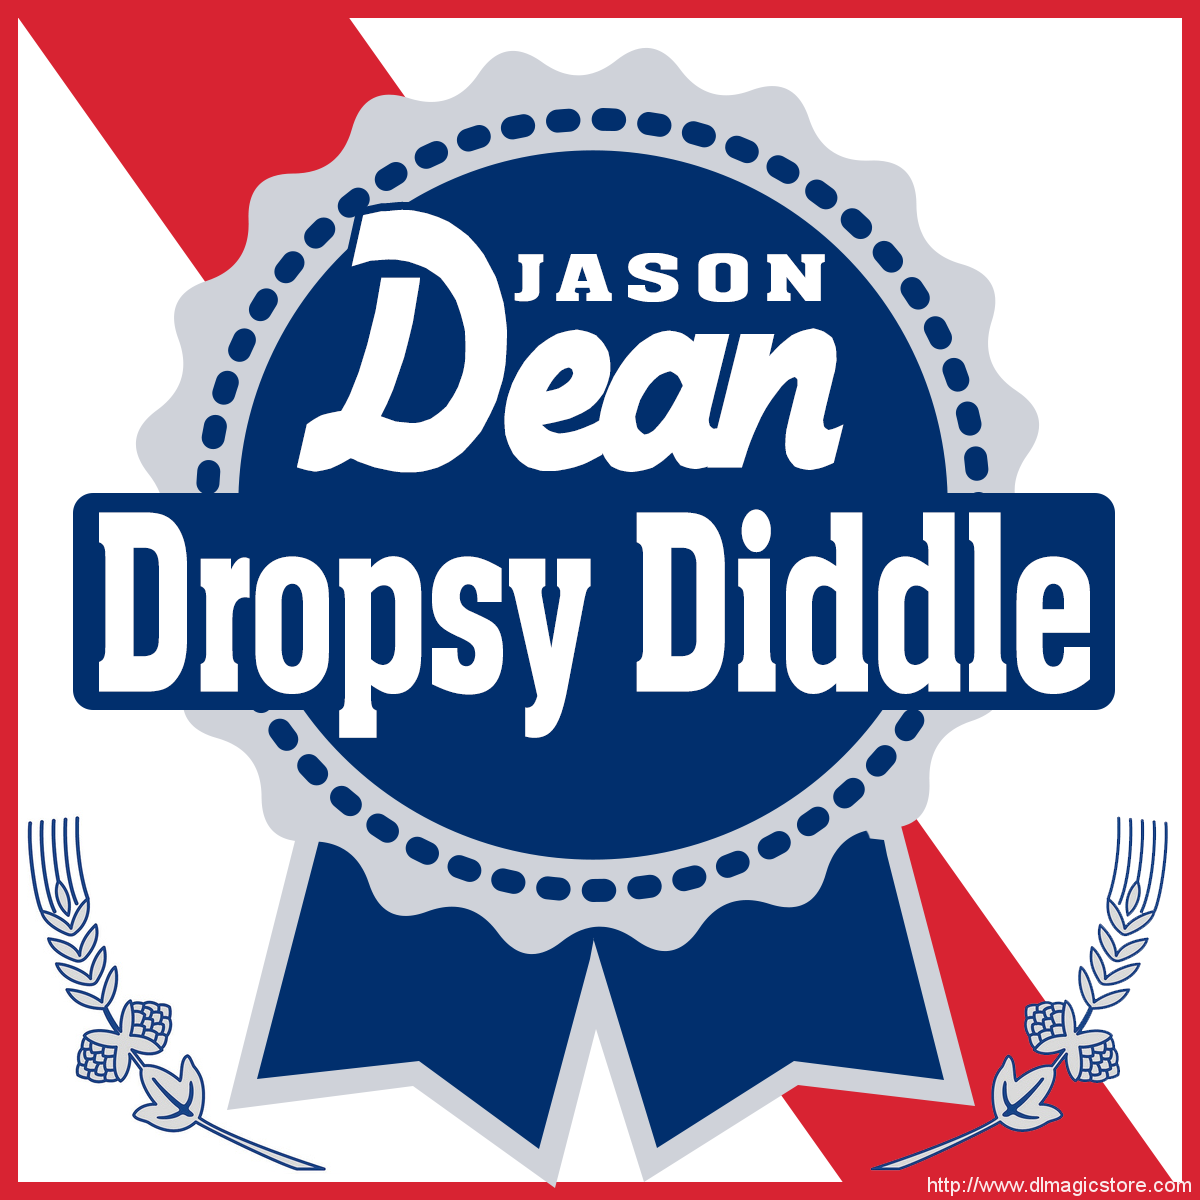 Dropsy Diddle by Jason Dean (Instant Download)